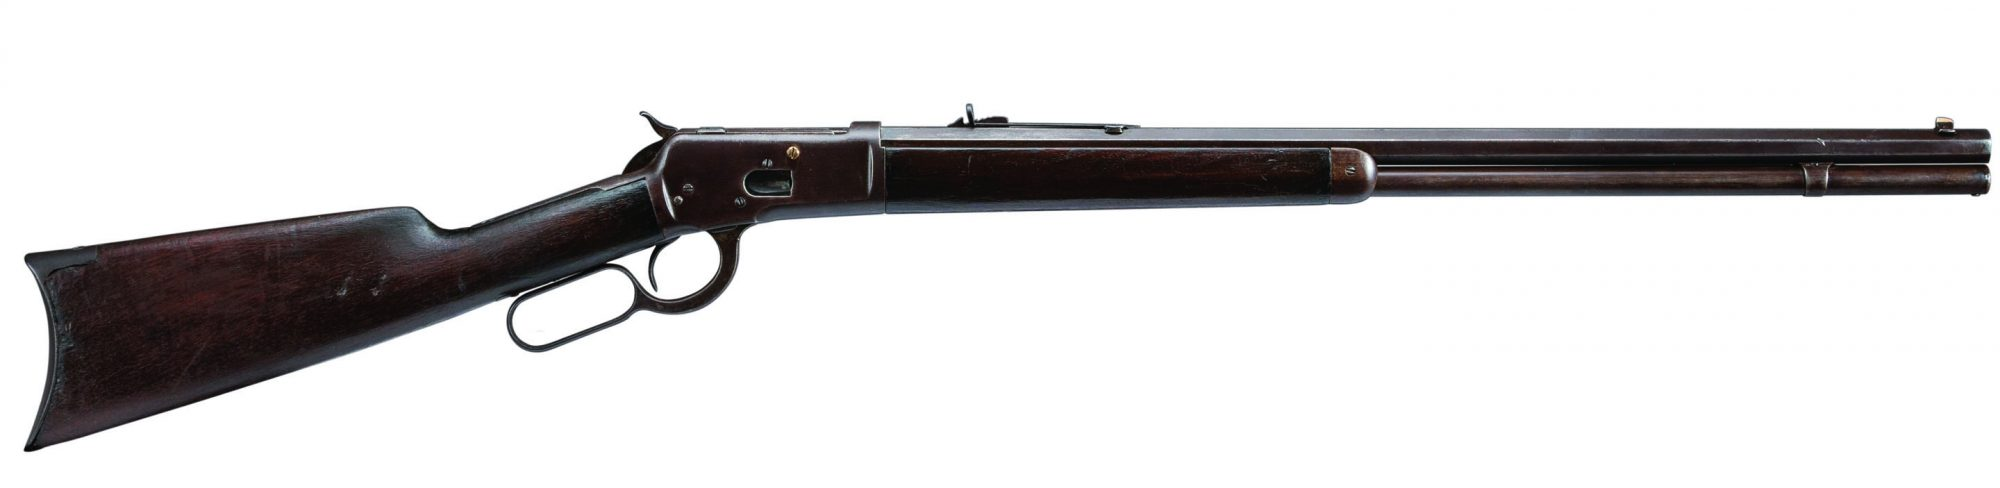 Photo of a Winchester Model 1892 from 1900 before restoration in 2019 by Turnbull Restoration Co. of Bloomfield, NY